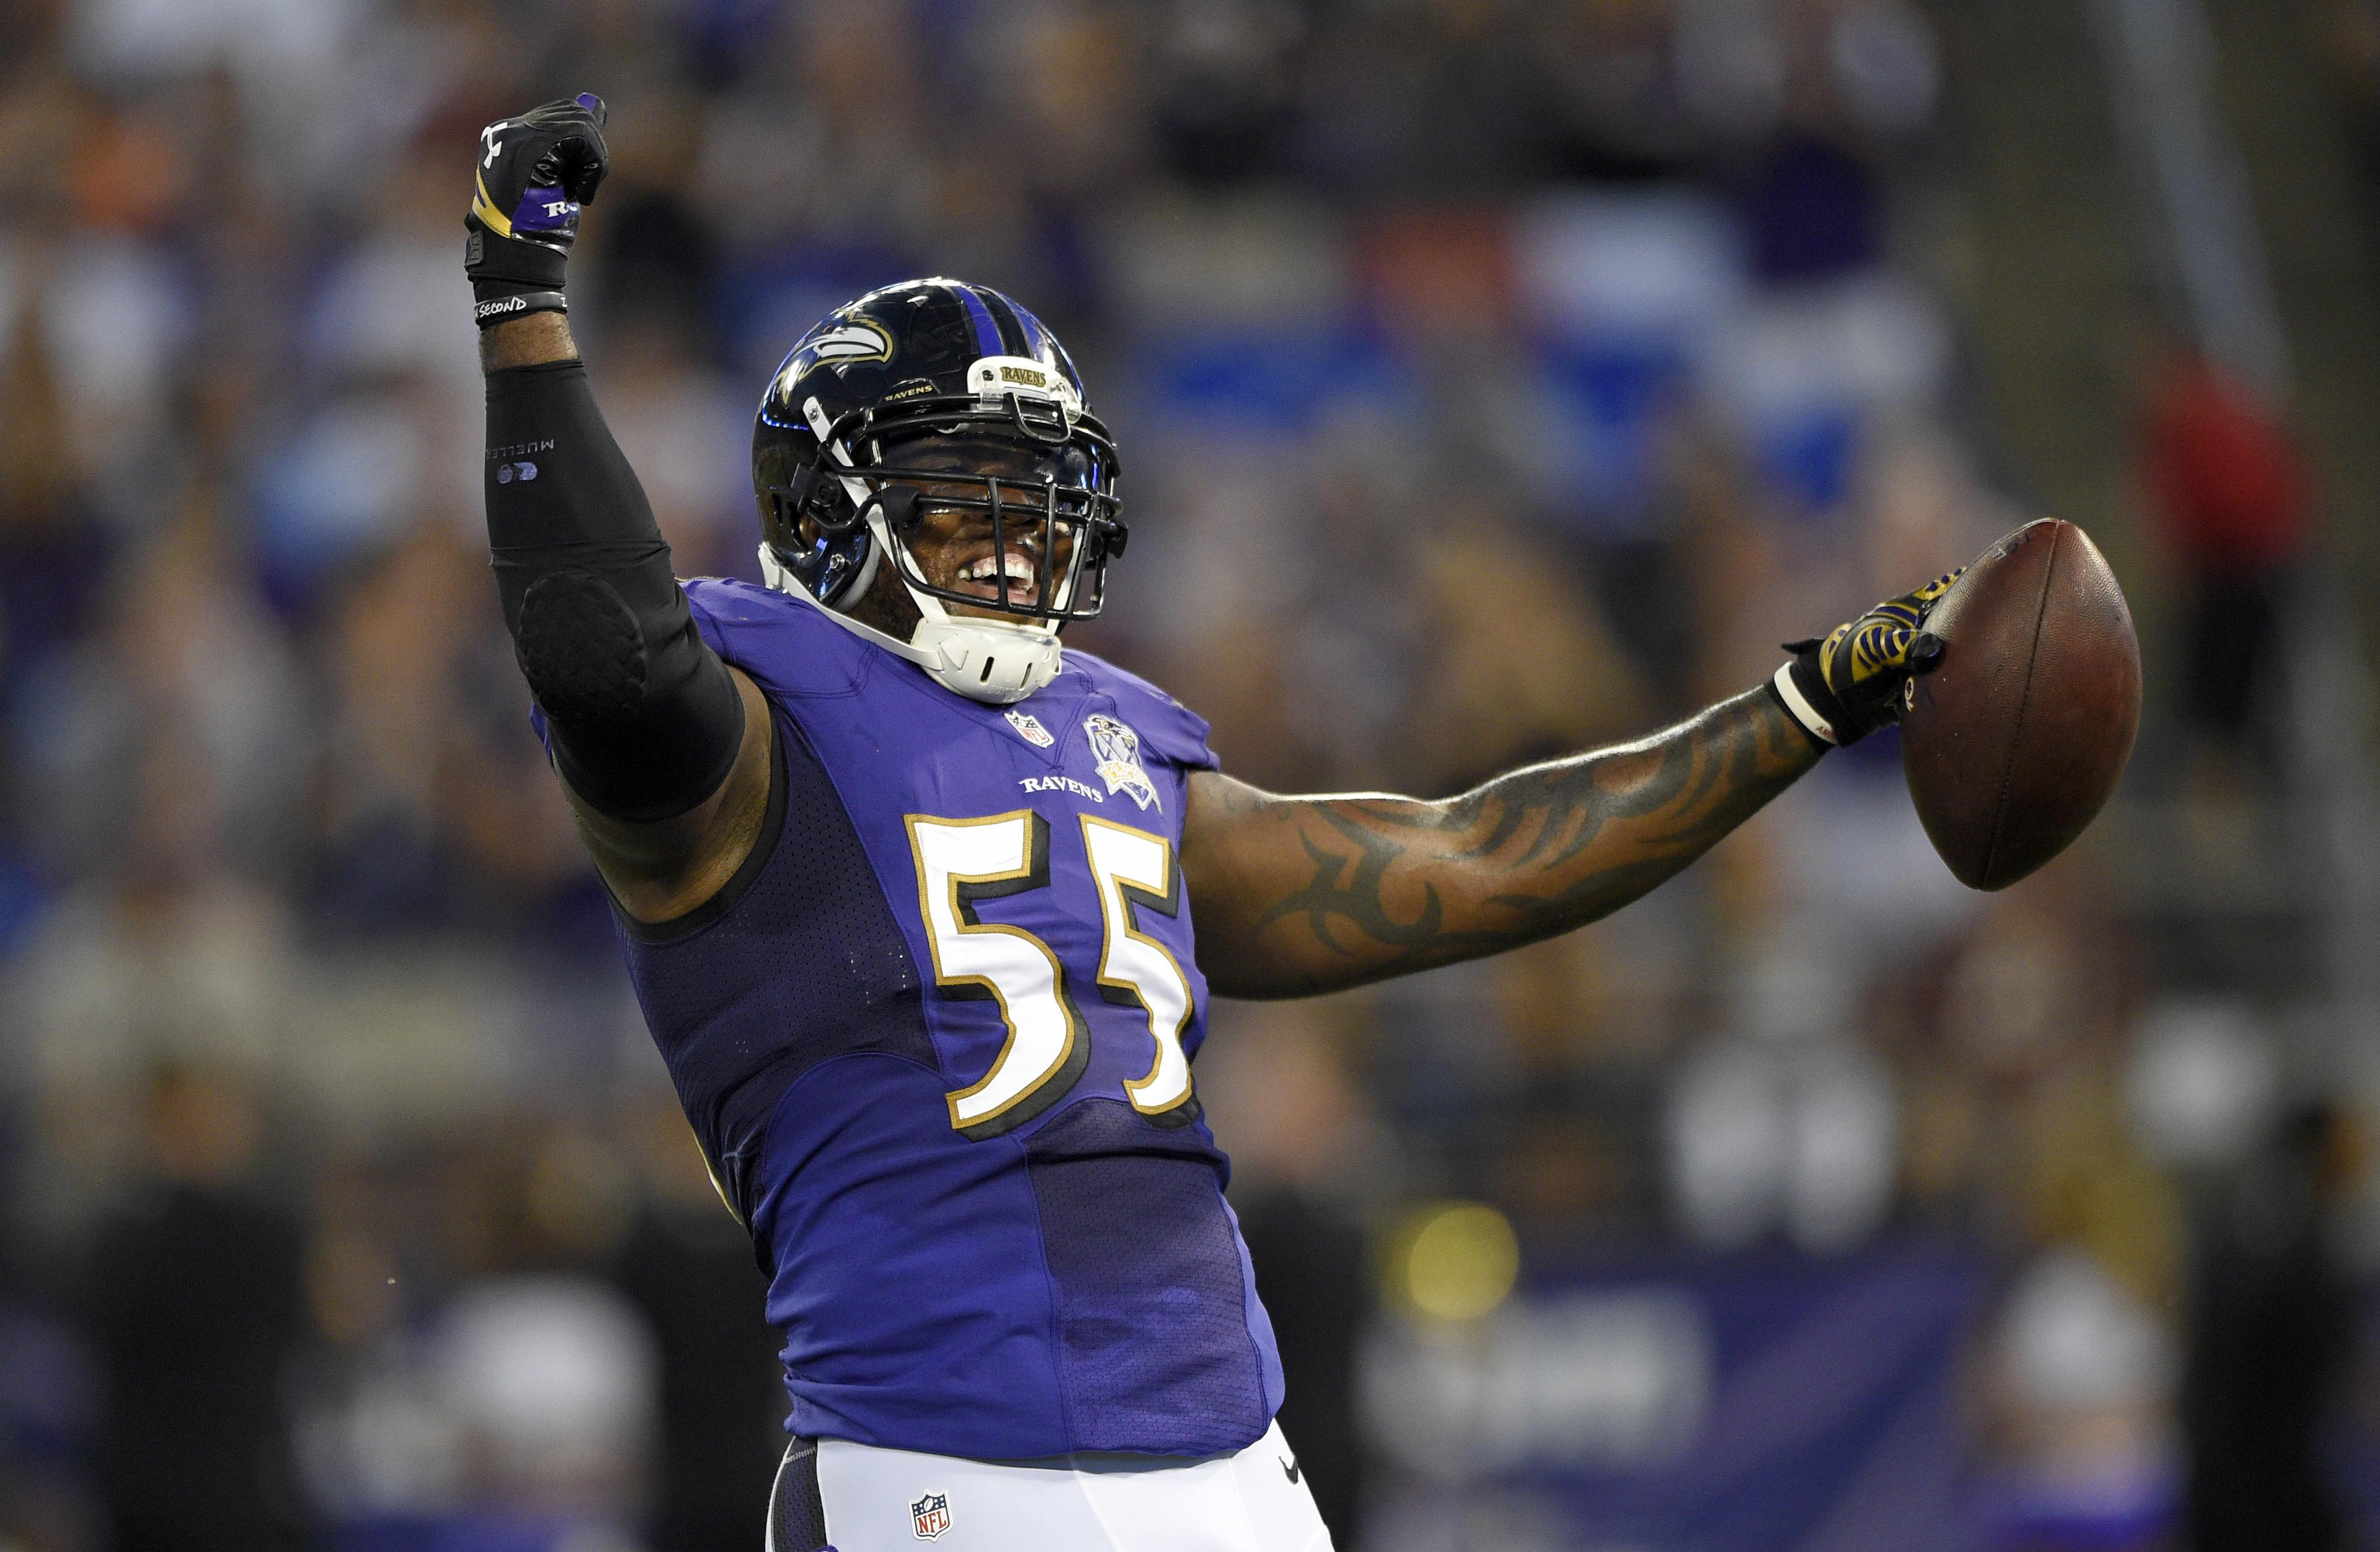 Ravens' Terrell Suggs ramps up intensity and workouts in 15th season